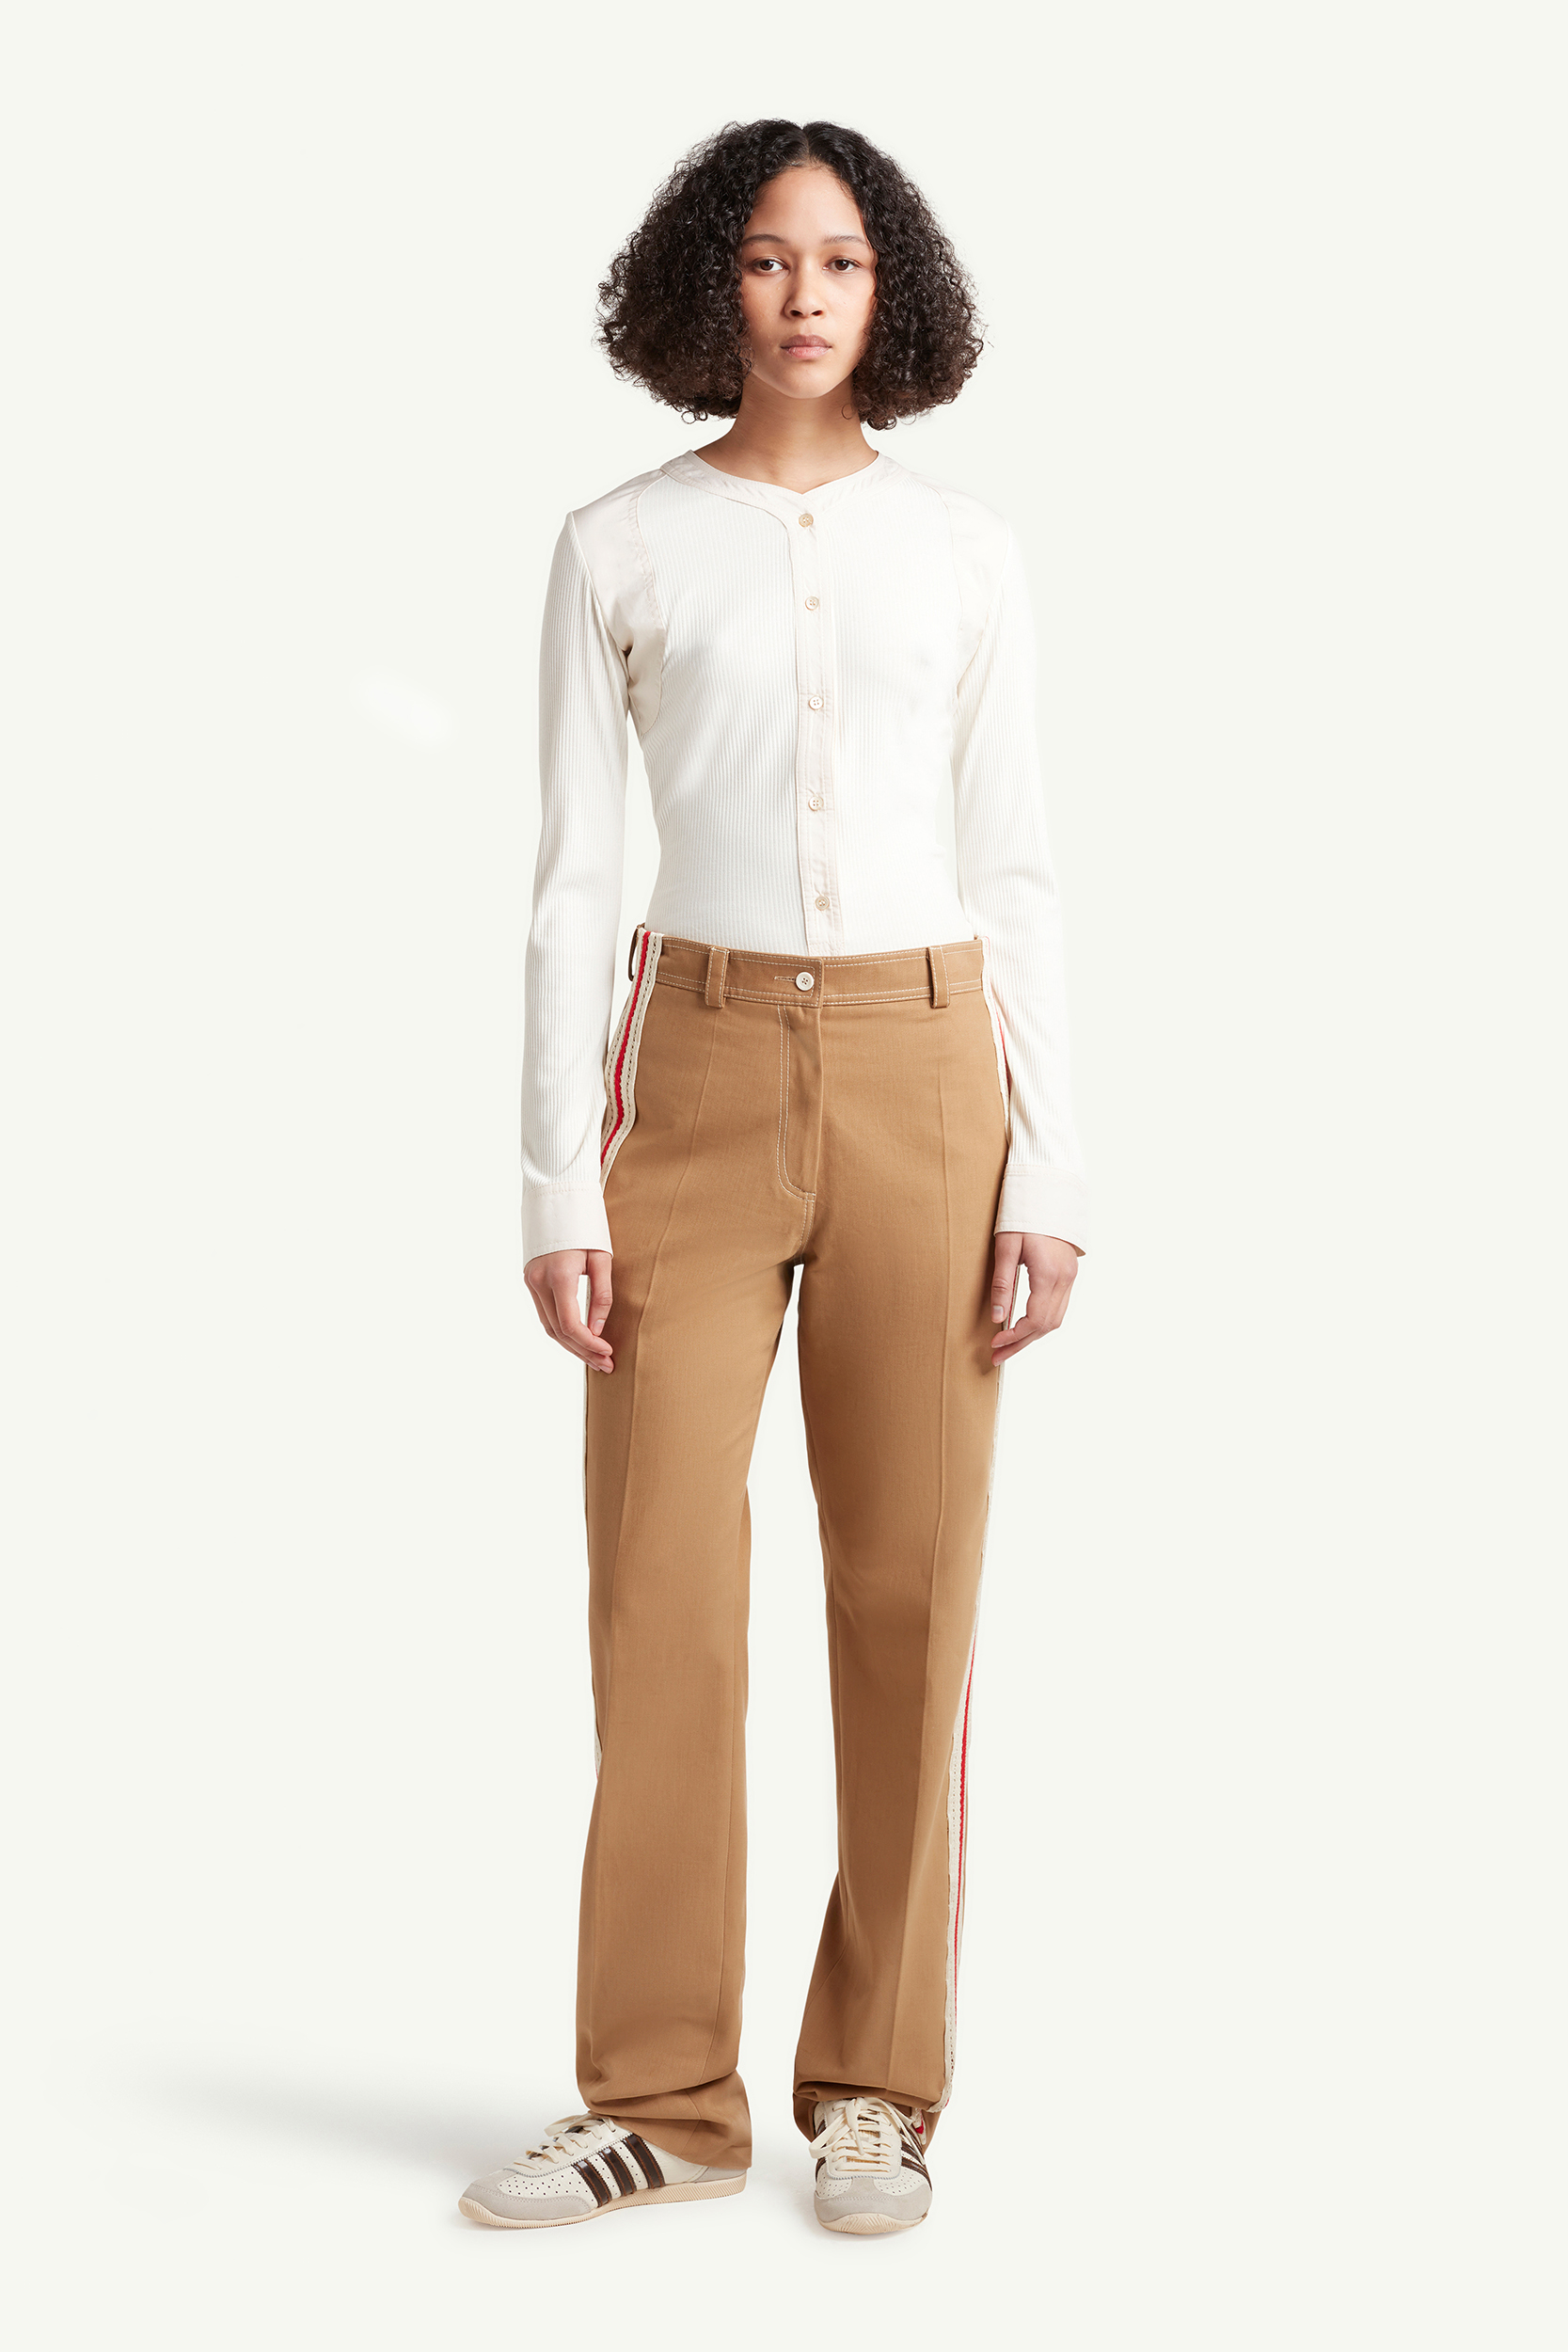 Womenswear Model wearing light brown smart trousers with white top and white trainers  | eCommerce Photography London | LRP